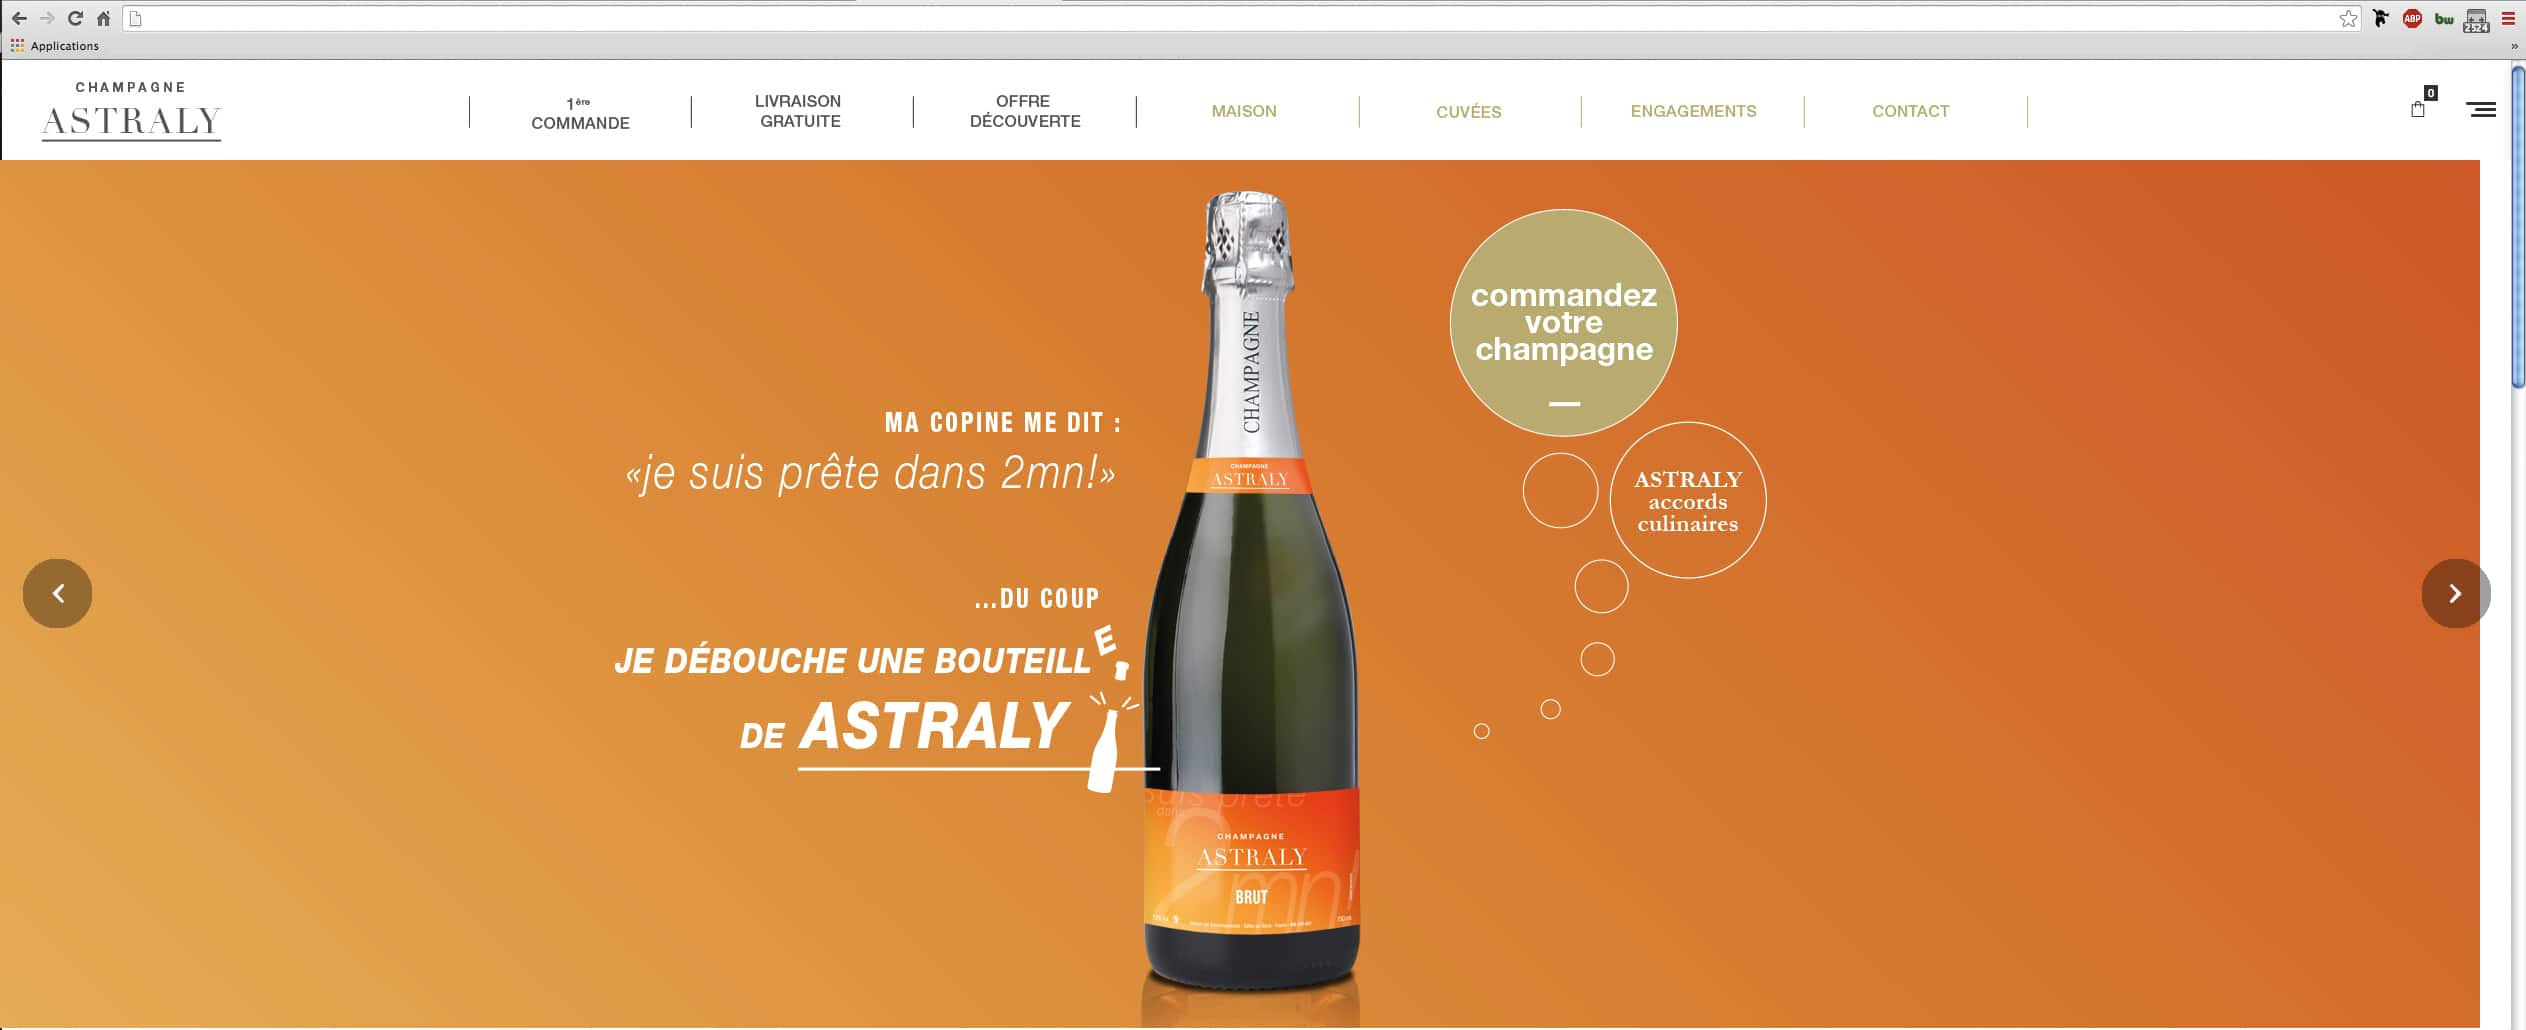 Lancement site Champagne Astraly